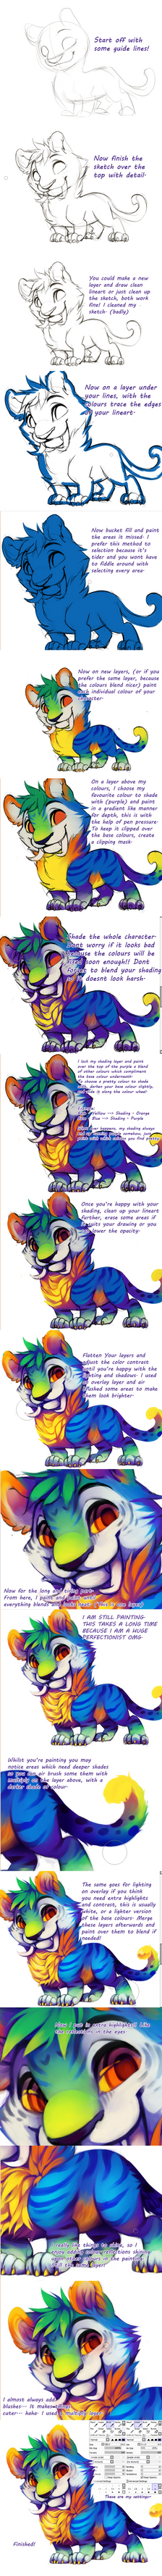 Tiger thing - Tutorial by Kiwiggle